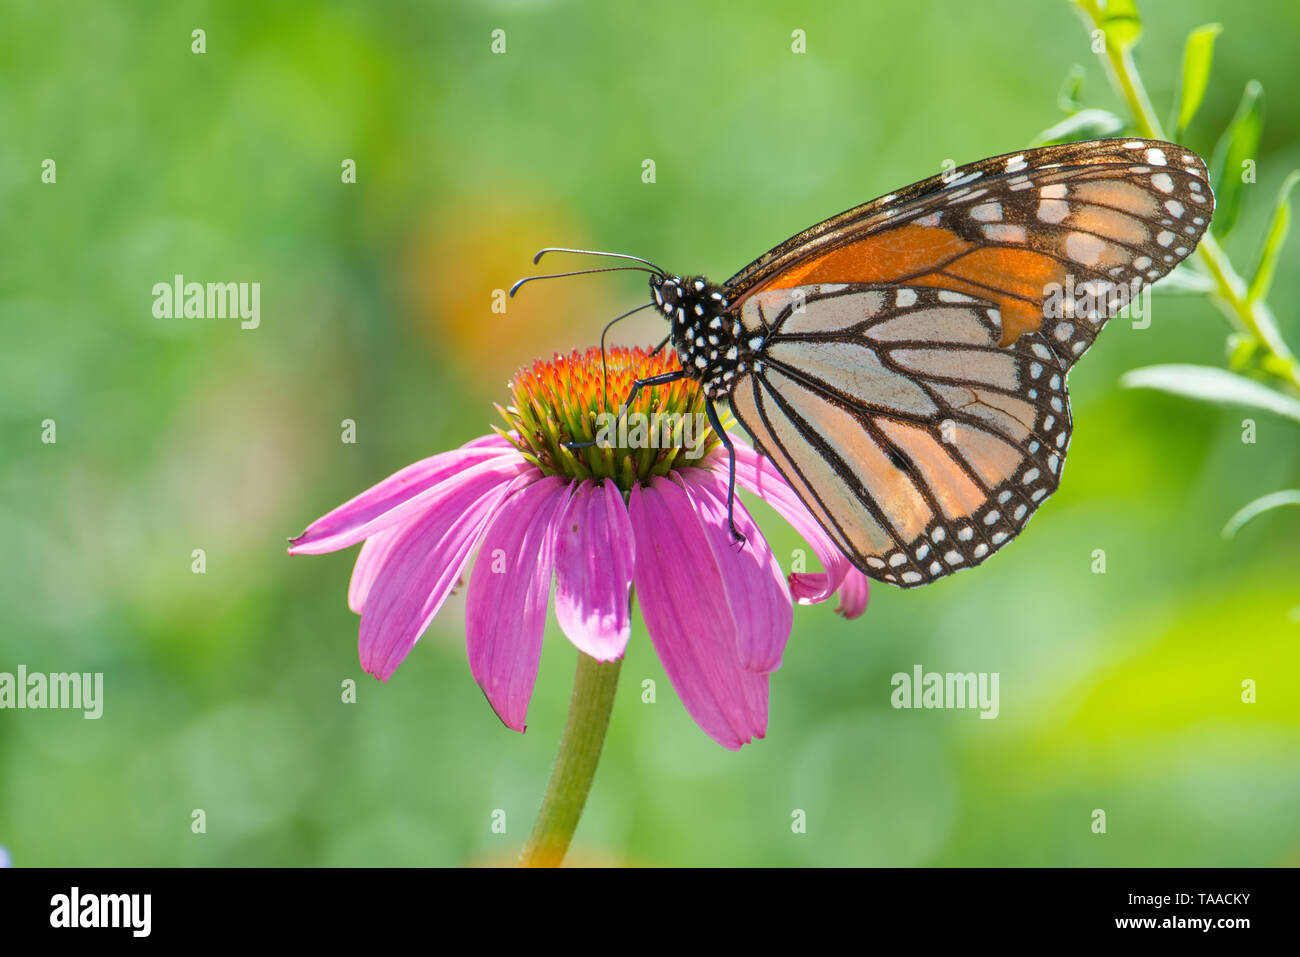 Monarch butterfly on purple wildflower in the Minnesota Valley National Wildlife Refuge - Stock Image